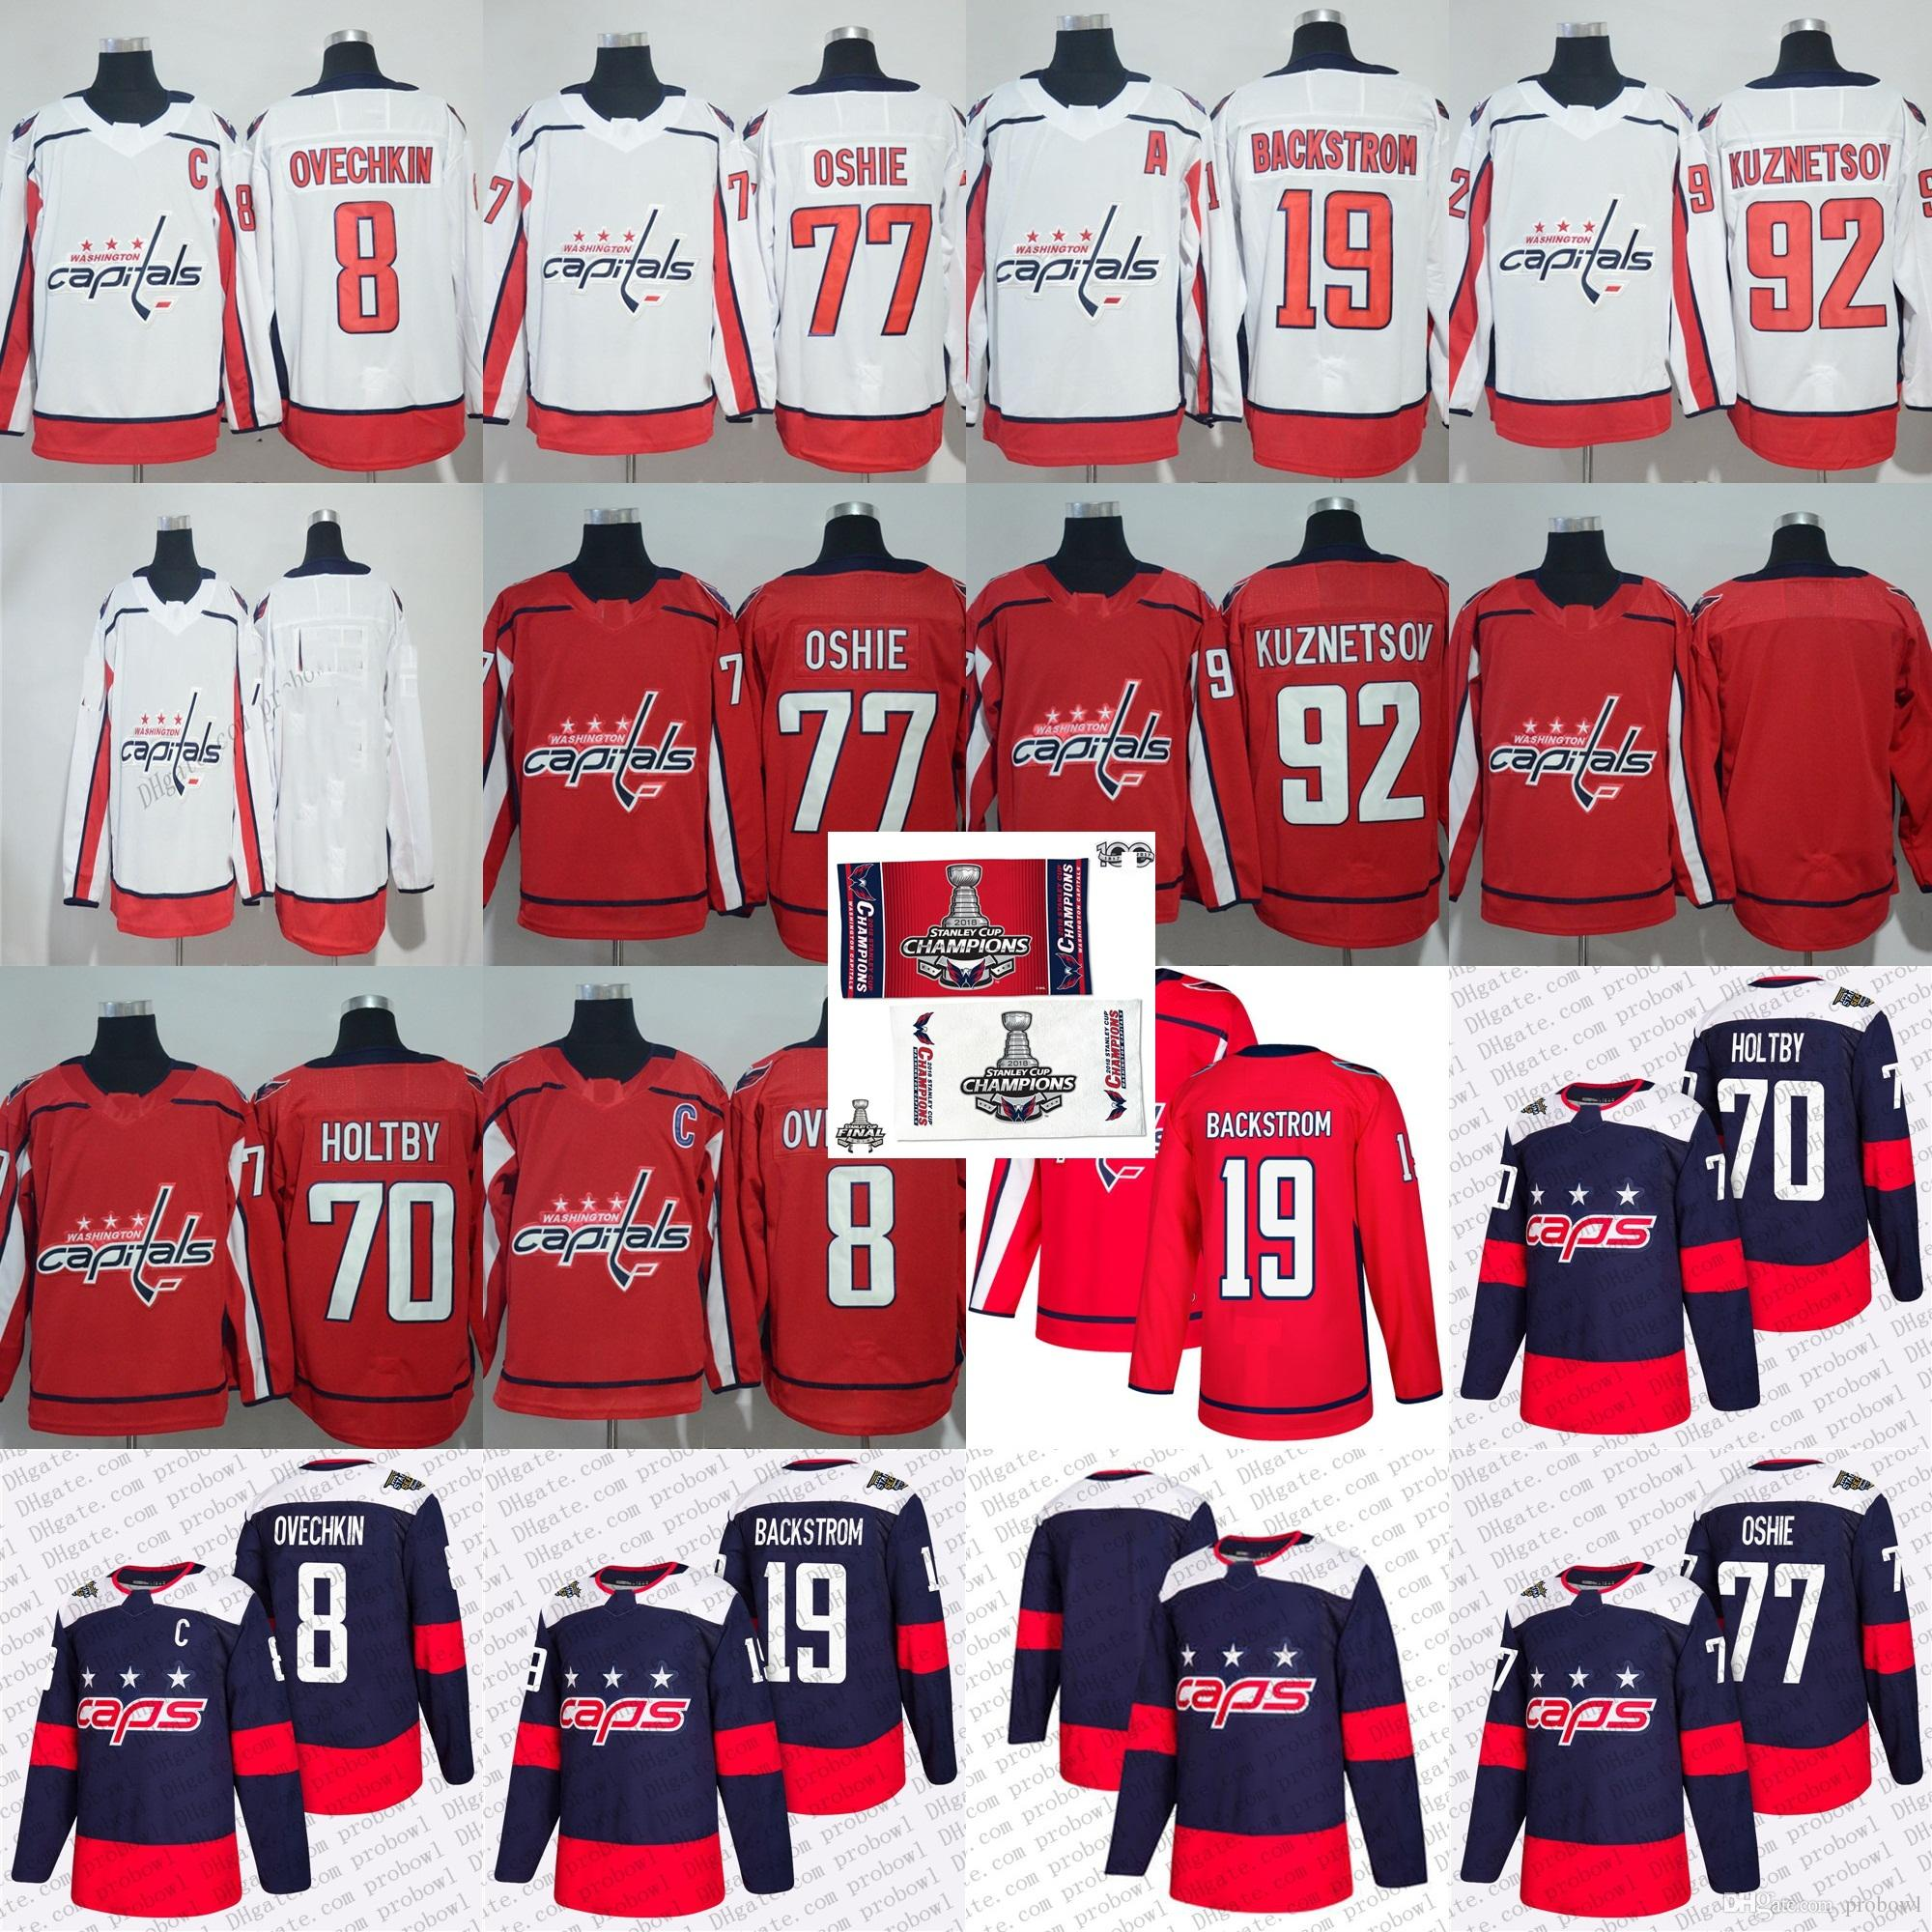 0e272896d 2019 2018 Stanley Final Stadium Series Champion Washington Capitals Alex  Ovechkin 77 TJ Oshie Braden Holtby Kuznetsov 19 Nicklas Backstrom Jersey  From ...